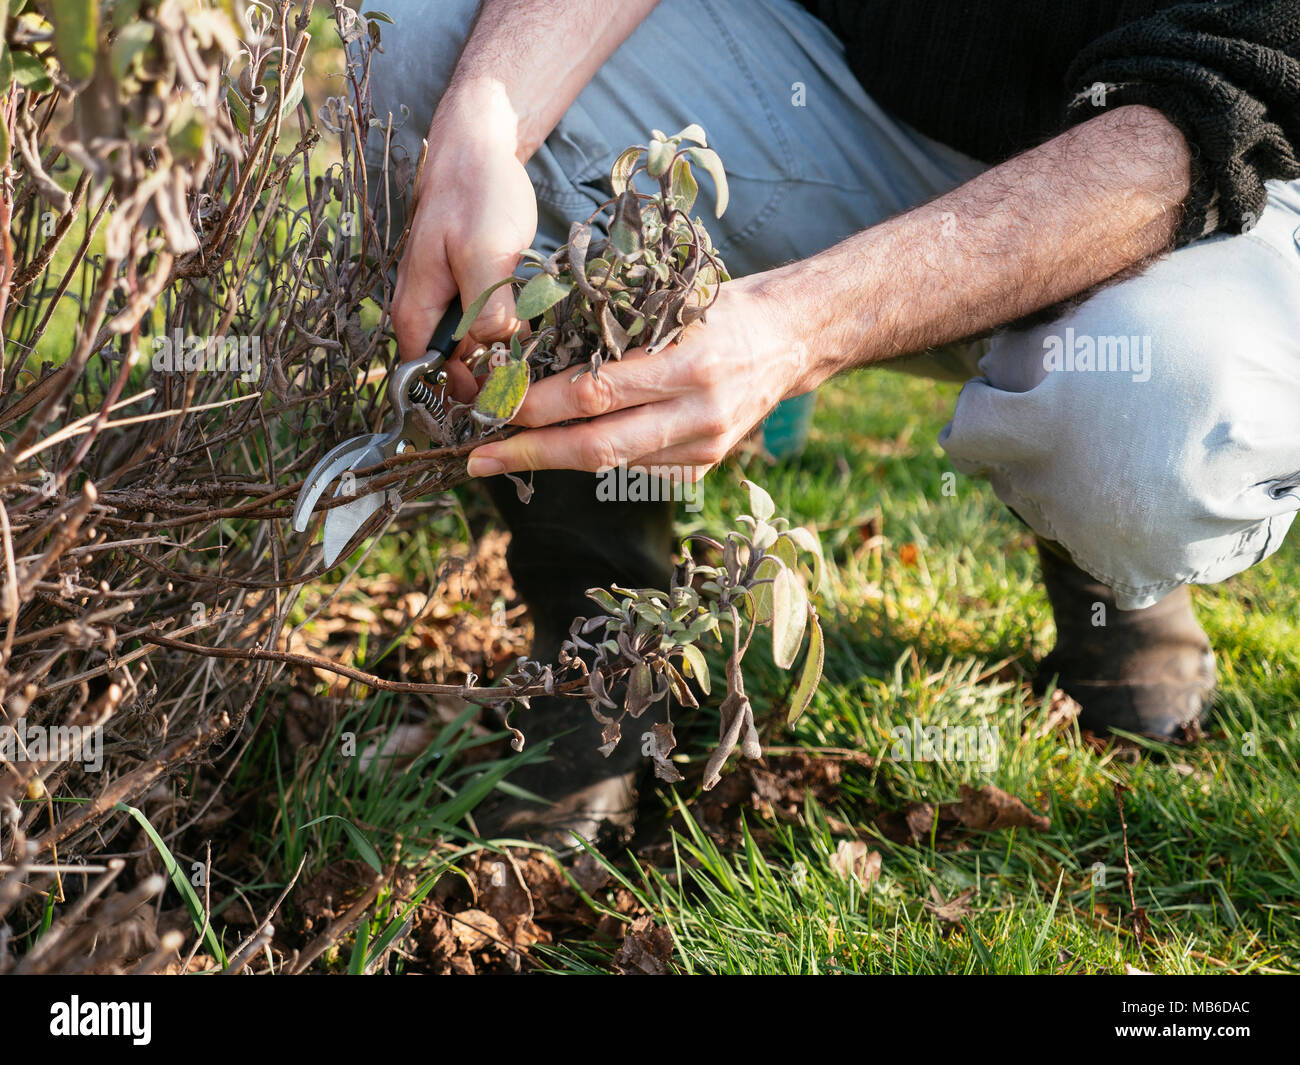 Gardner pruning herbaceous salvia in early spring. - Stock Image